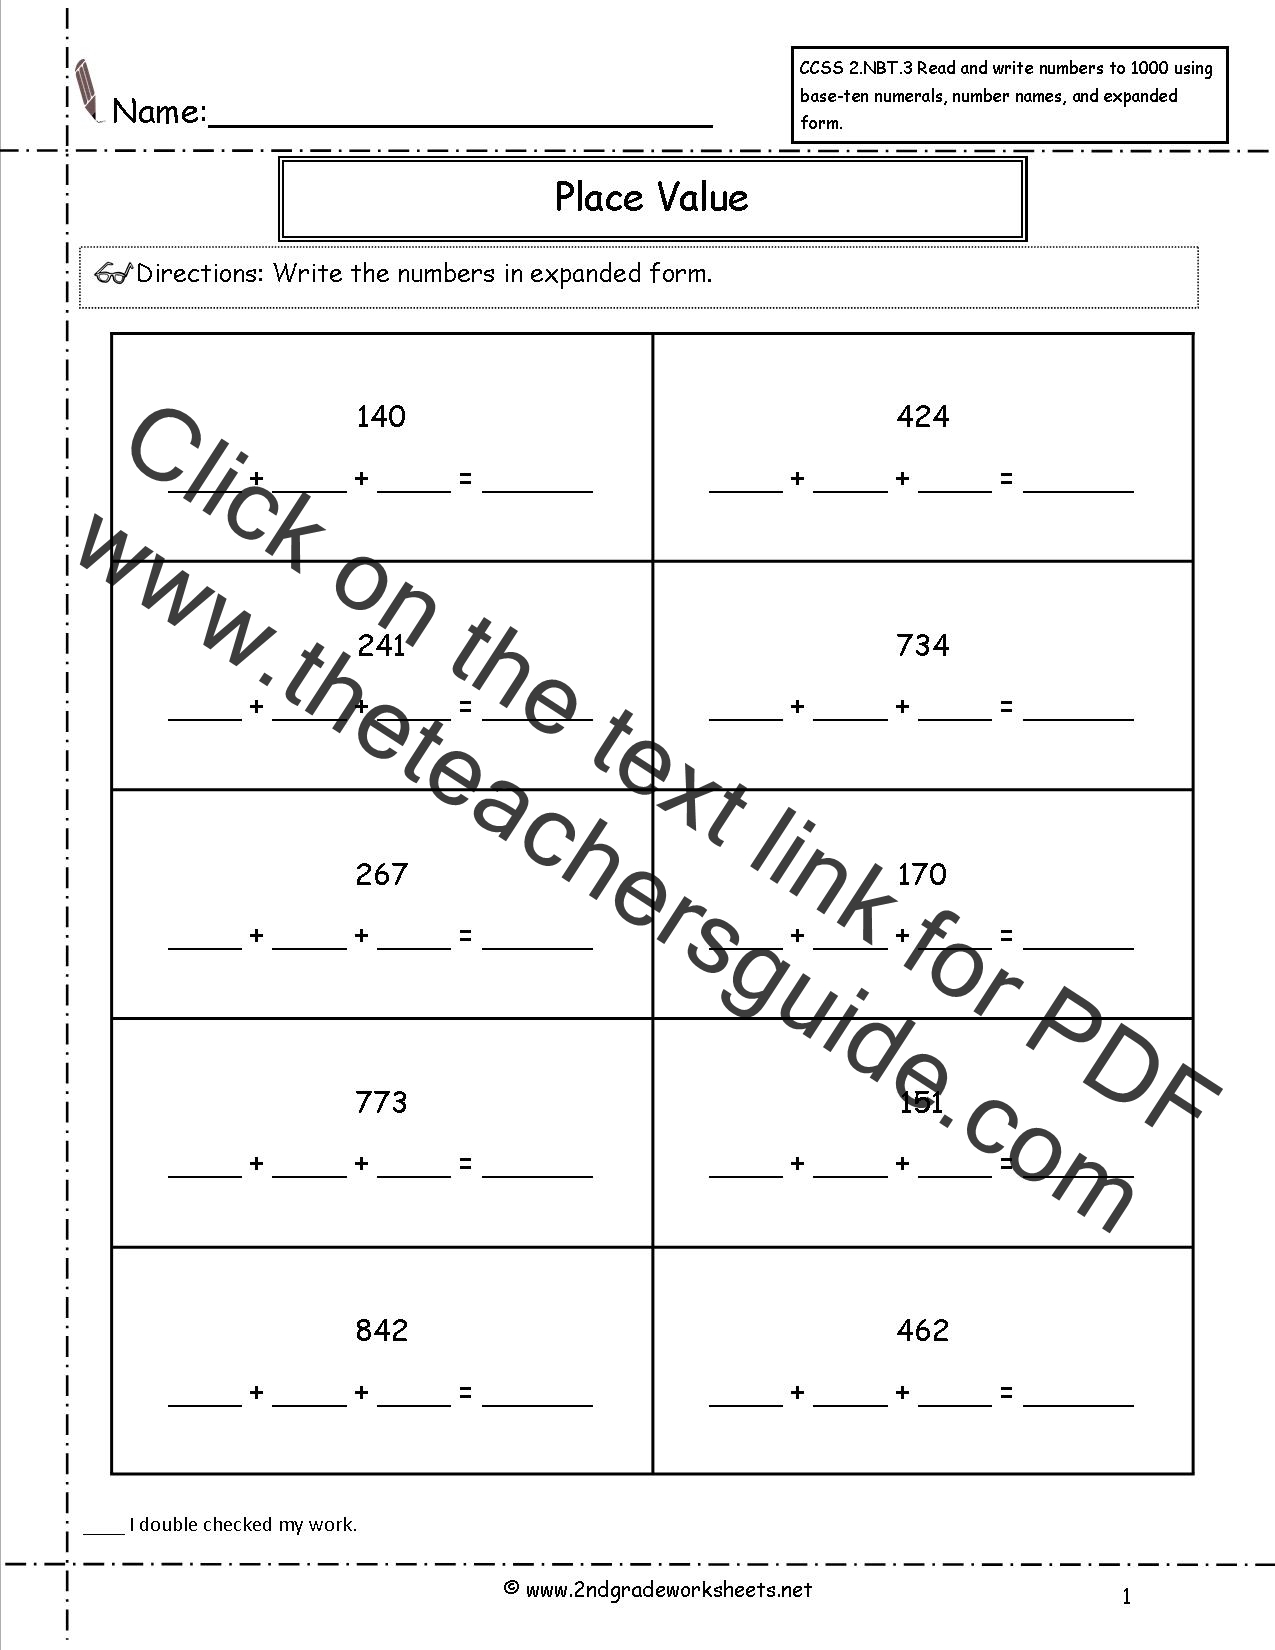 CCSS 2NBT3 Worksheets Place Value WorksheetsRead and Write Numbers – Number and Operations in Base Ten Worksheets